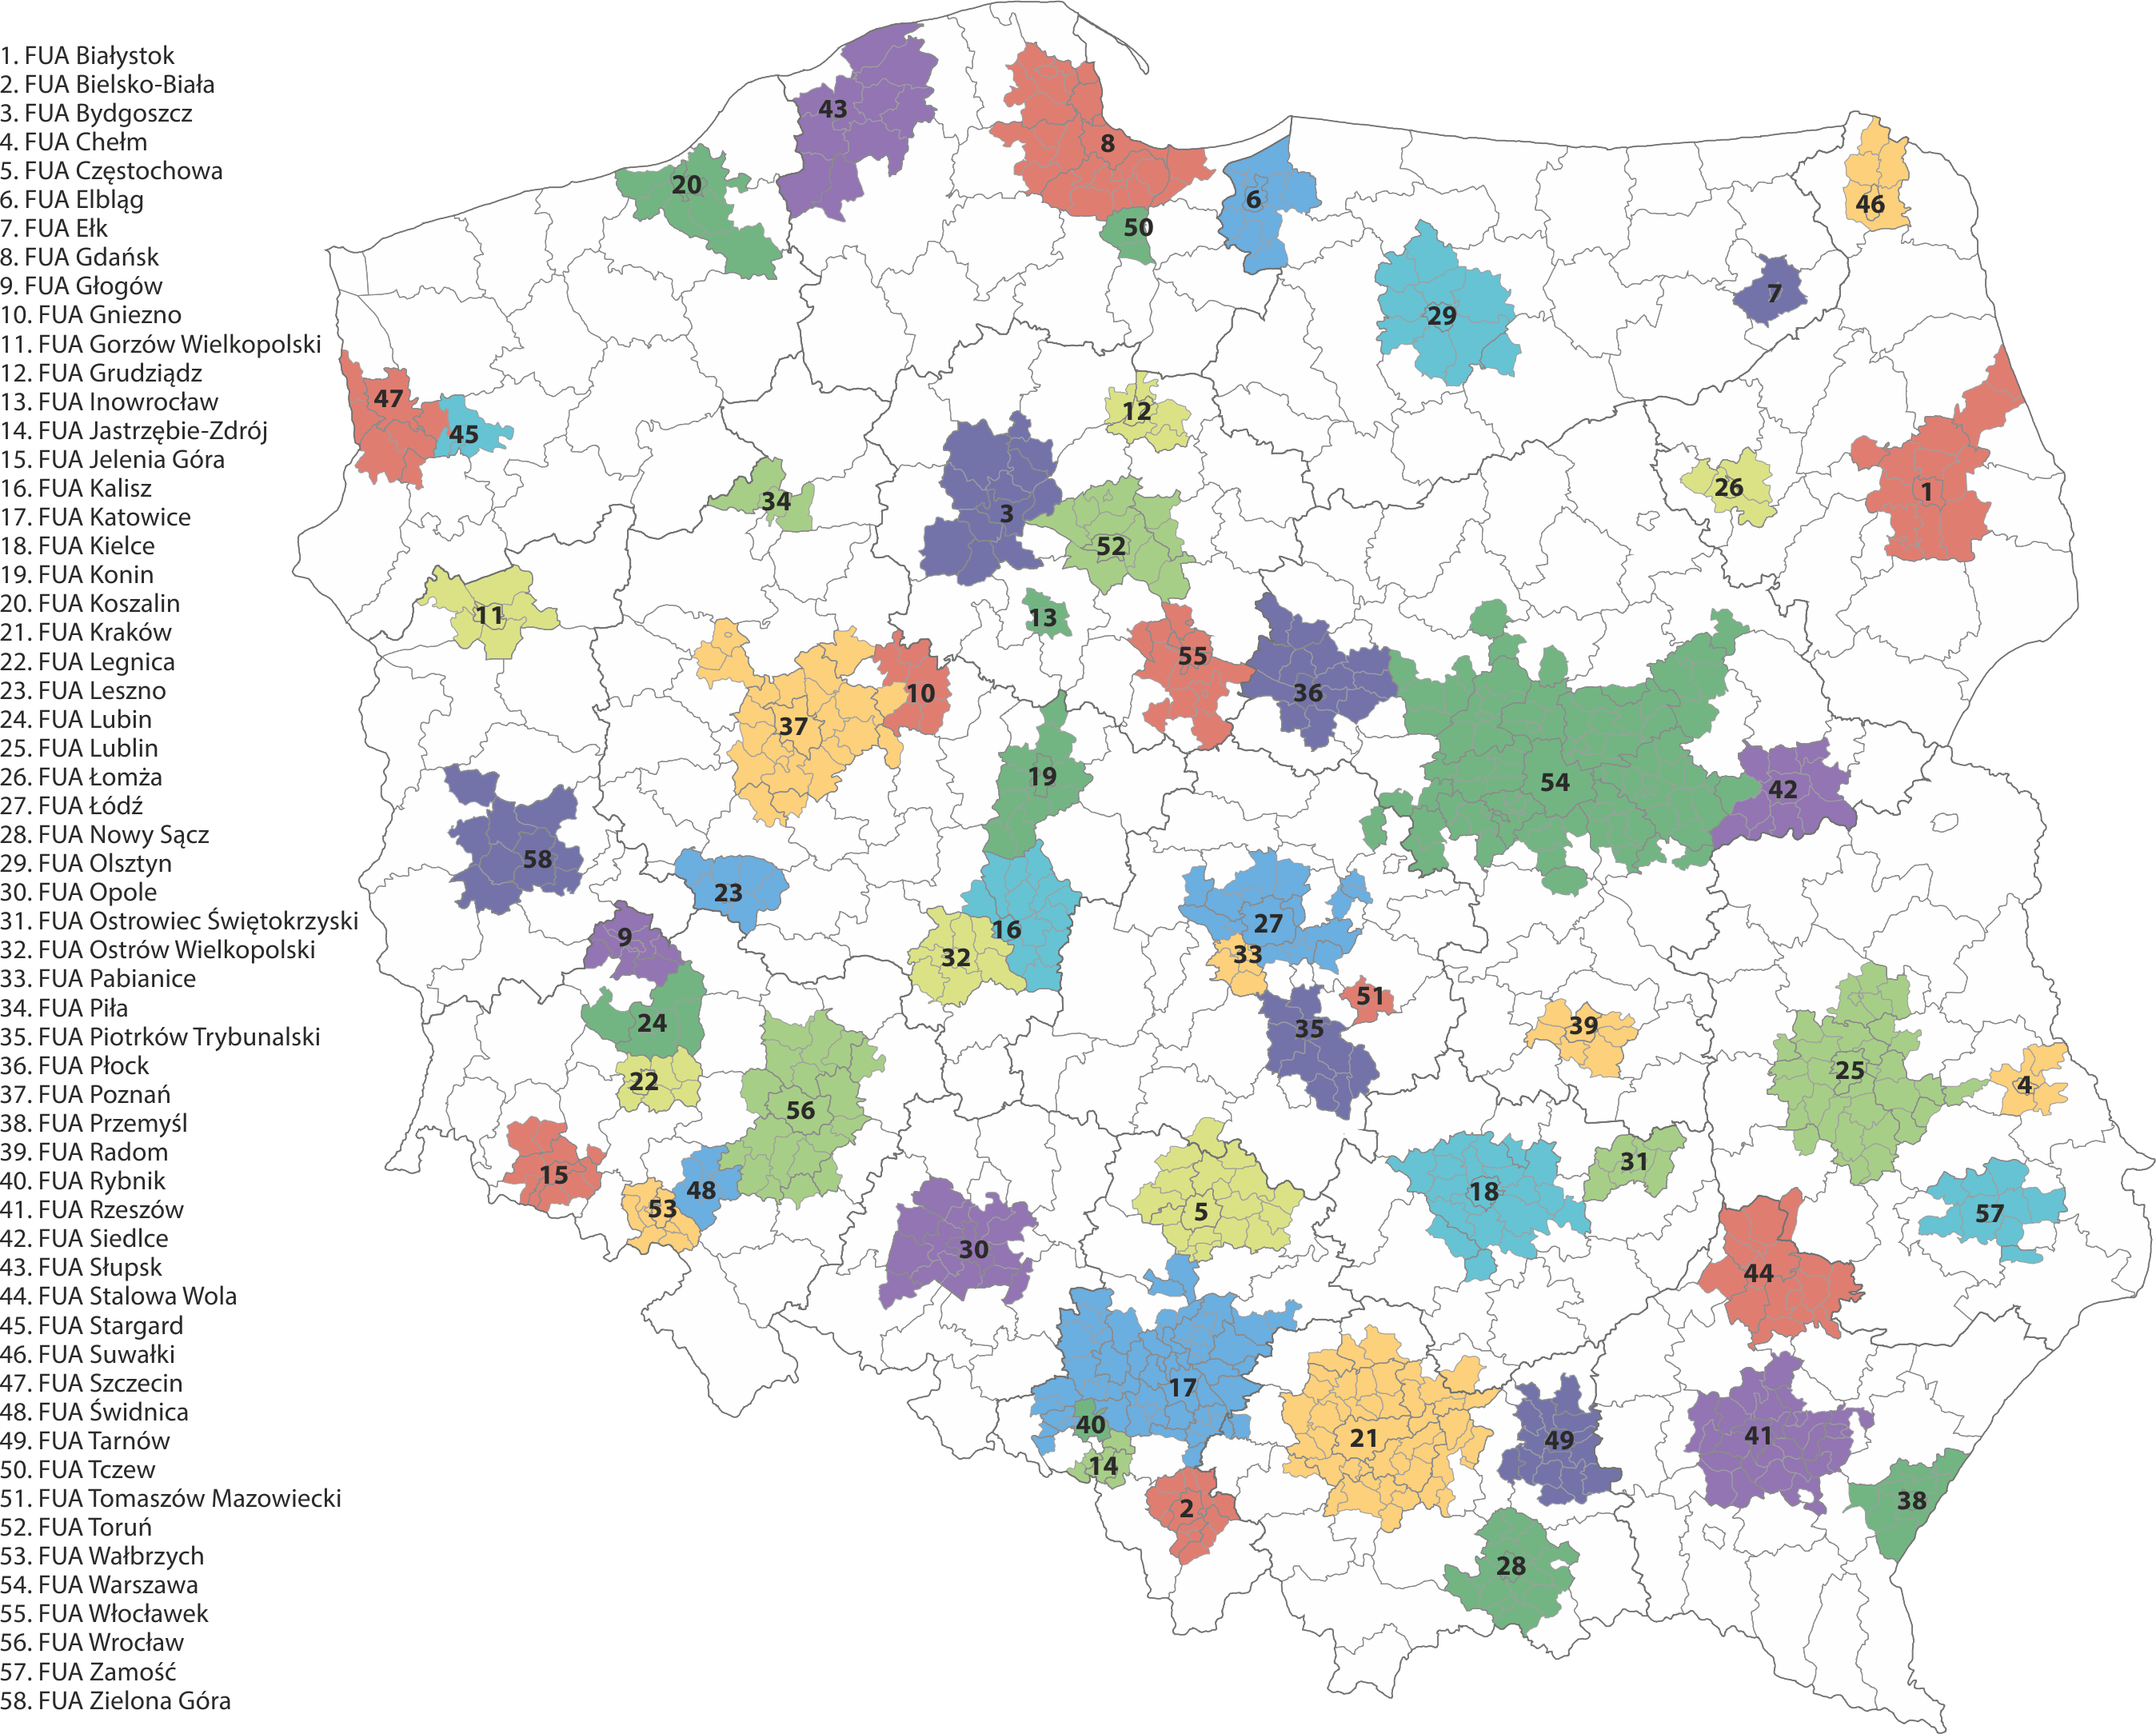 Functional urban areas (FUAs) in Poland in 2018